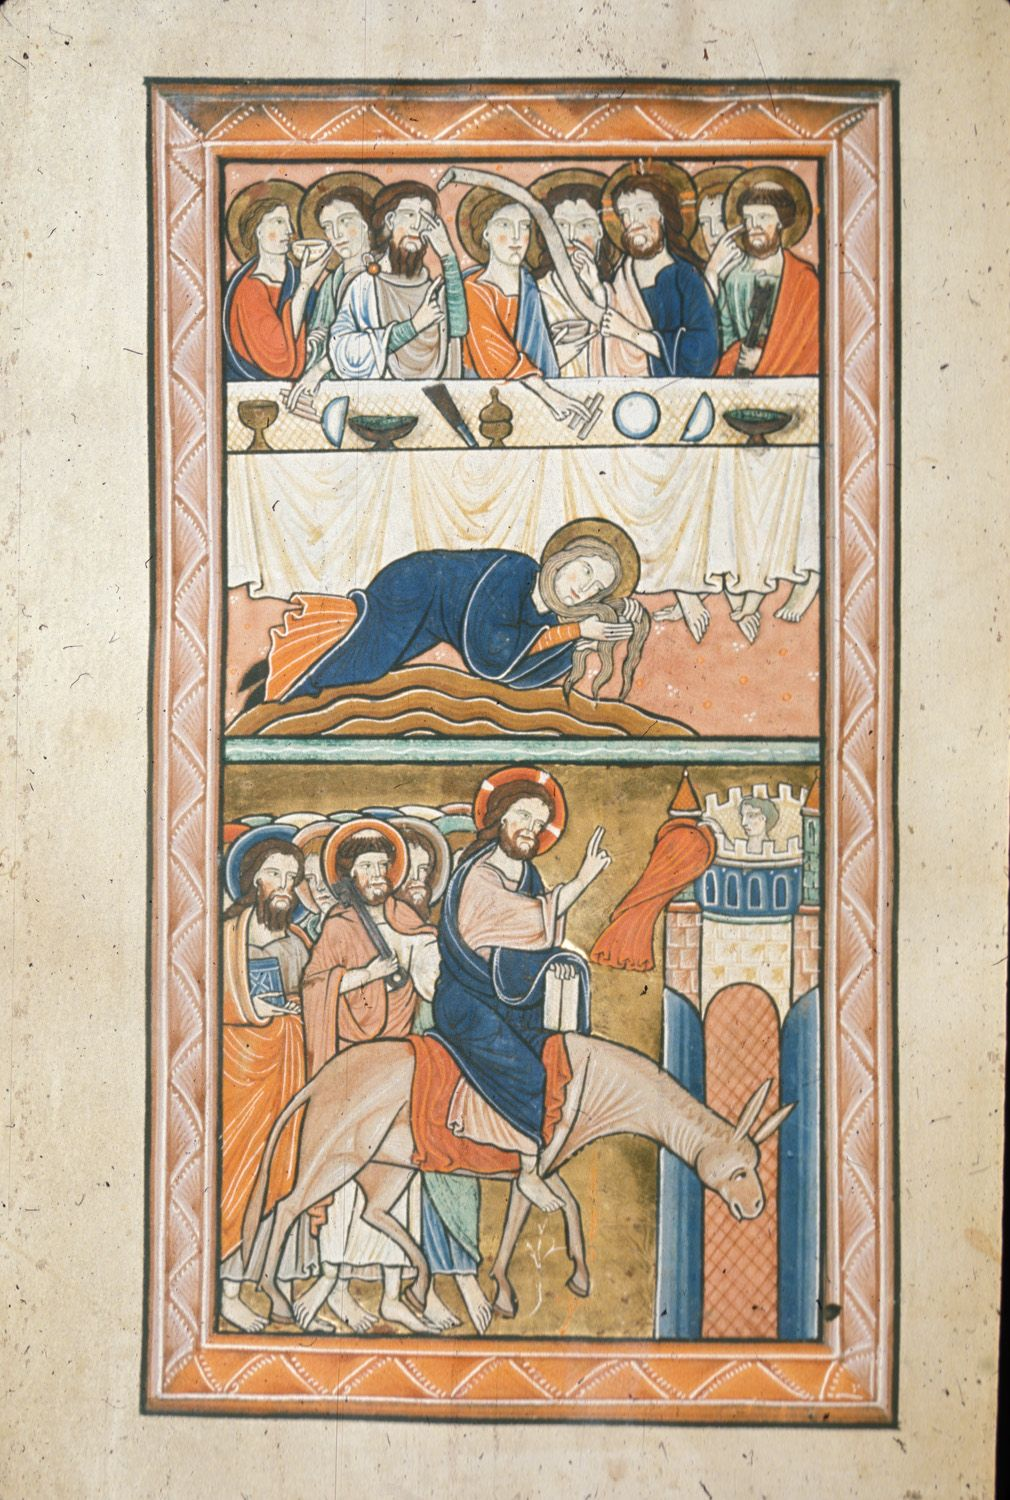 Mary Magdalene anointing Christ's feet and the Entry into Jerusalem (early 13th c. English psalter); more interesting table ware.